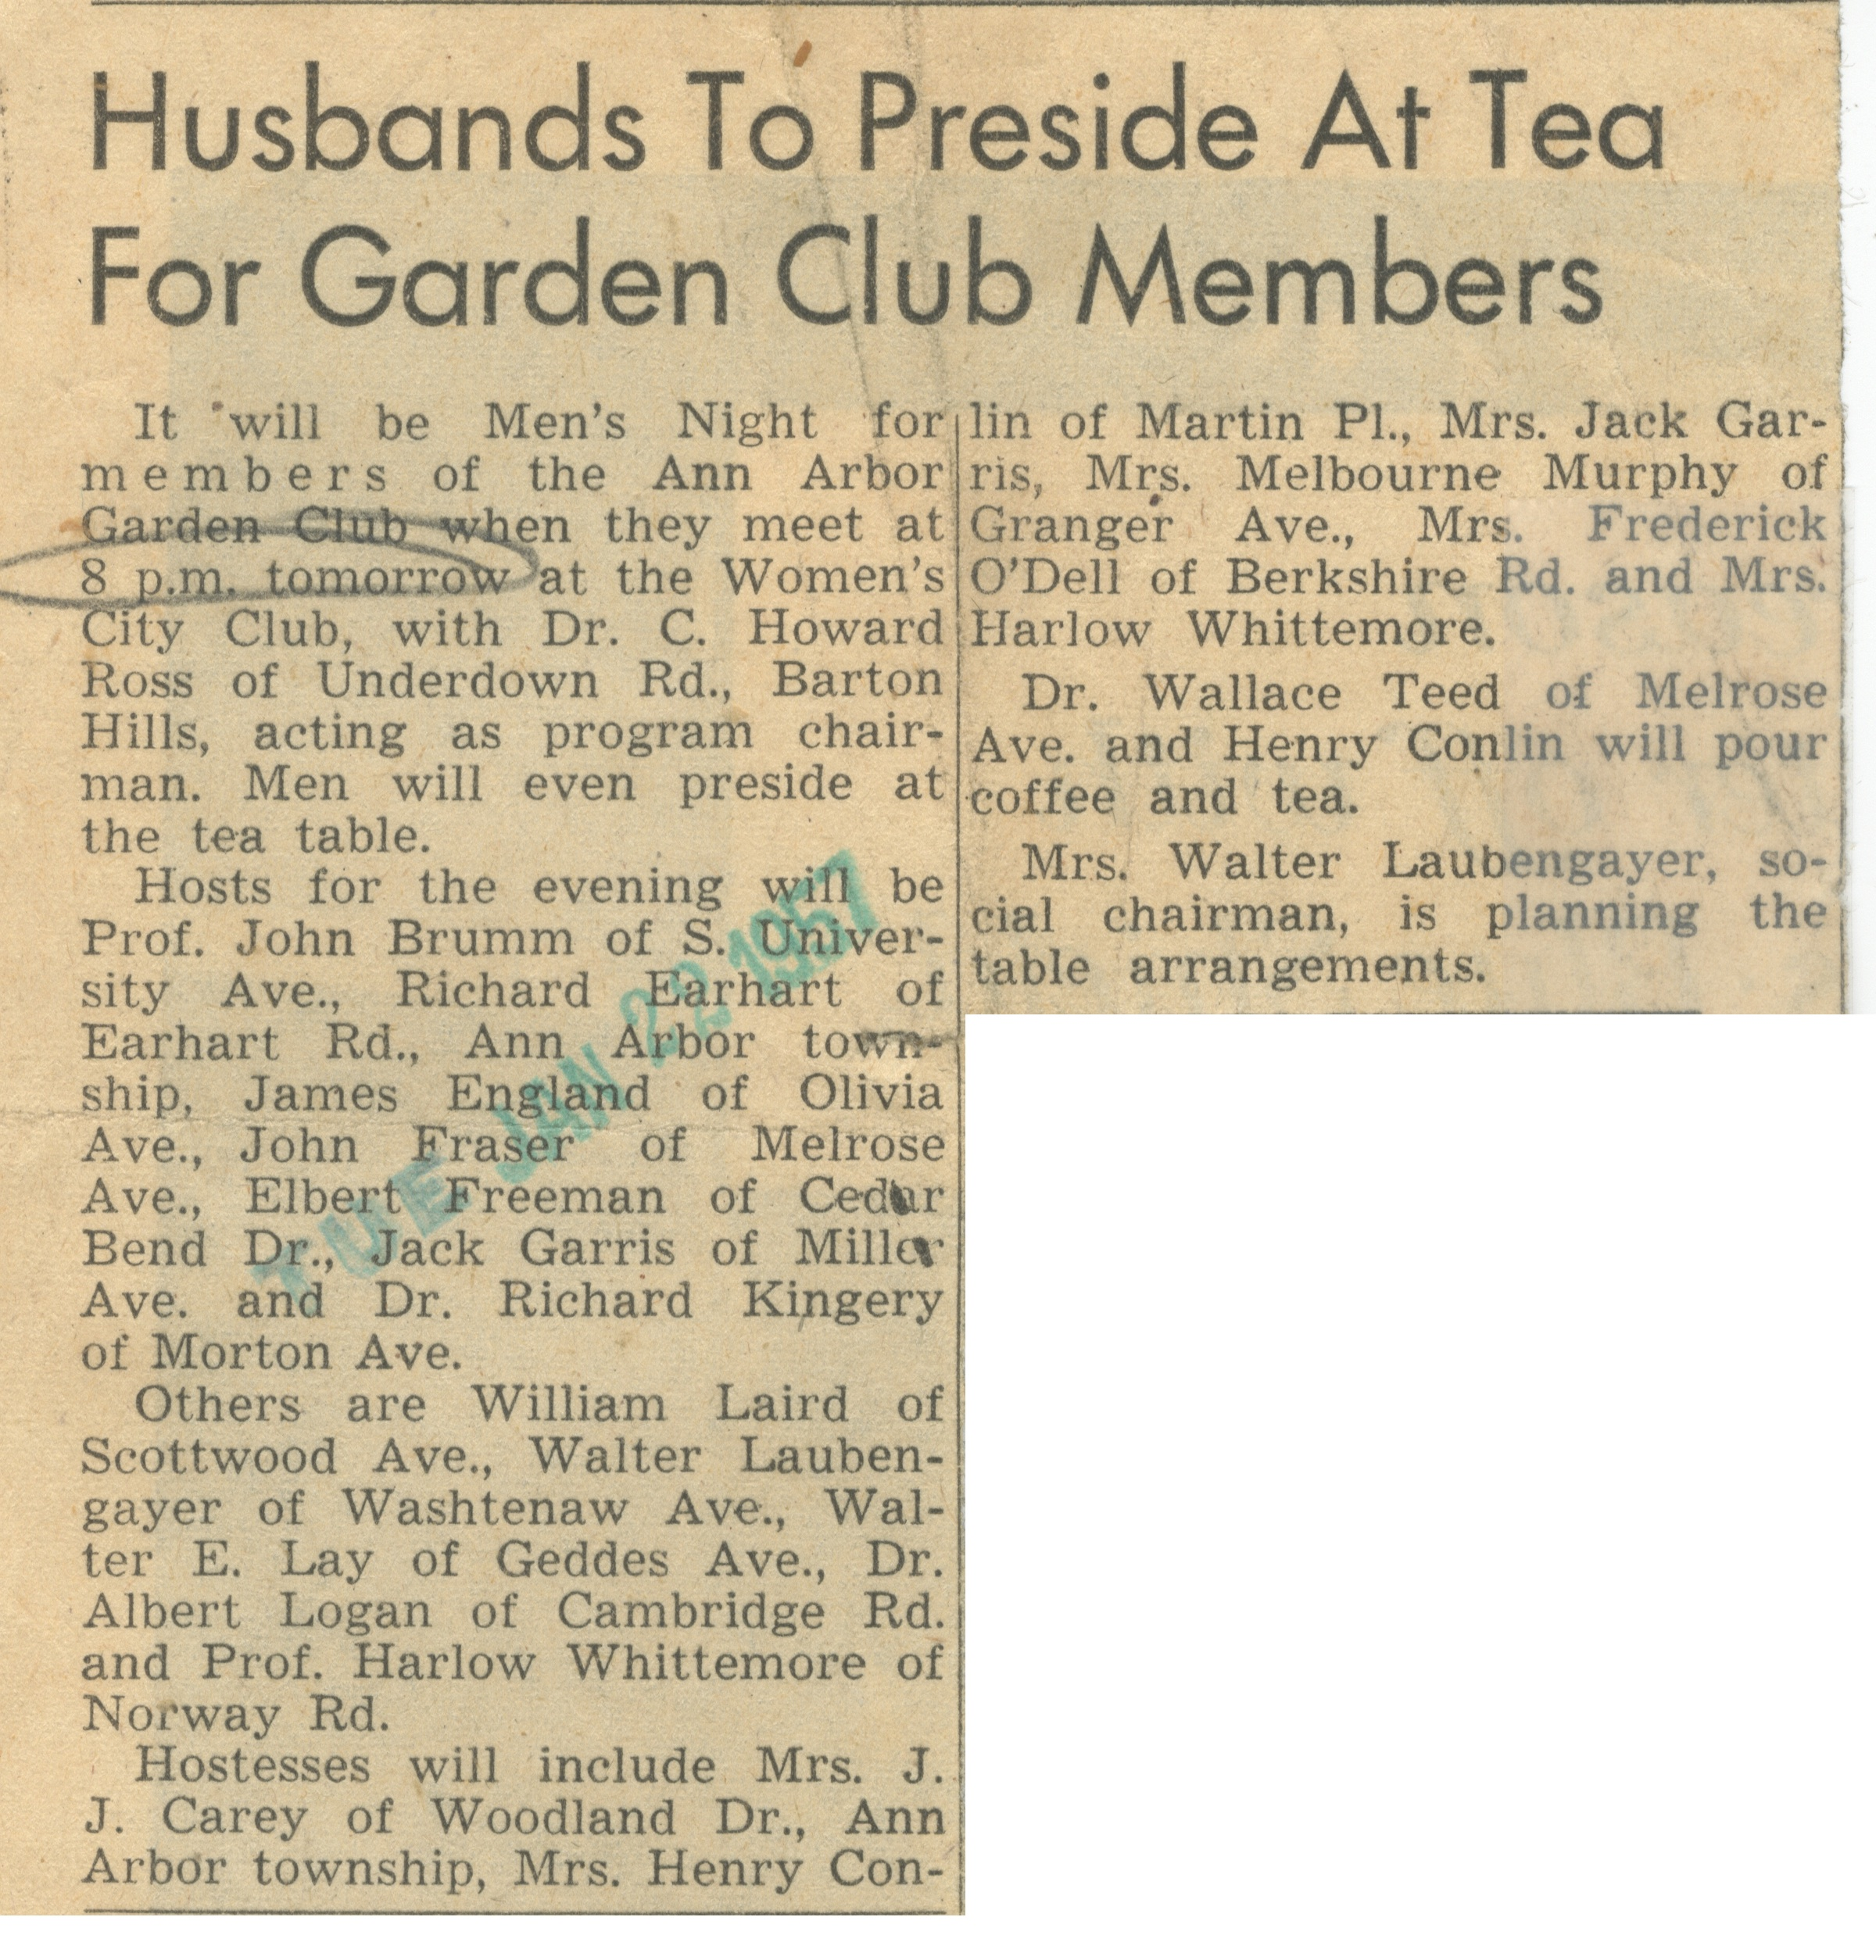 Husbands To Preside At Tea For Garden Club Members image